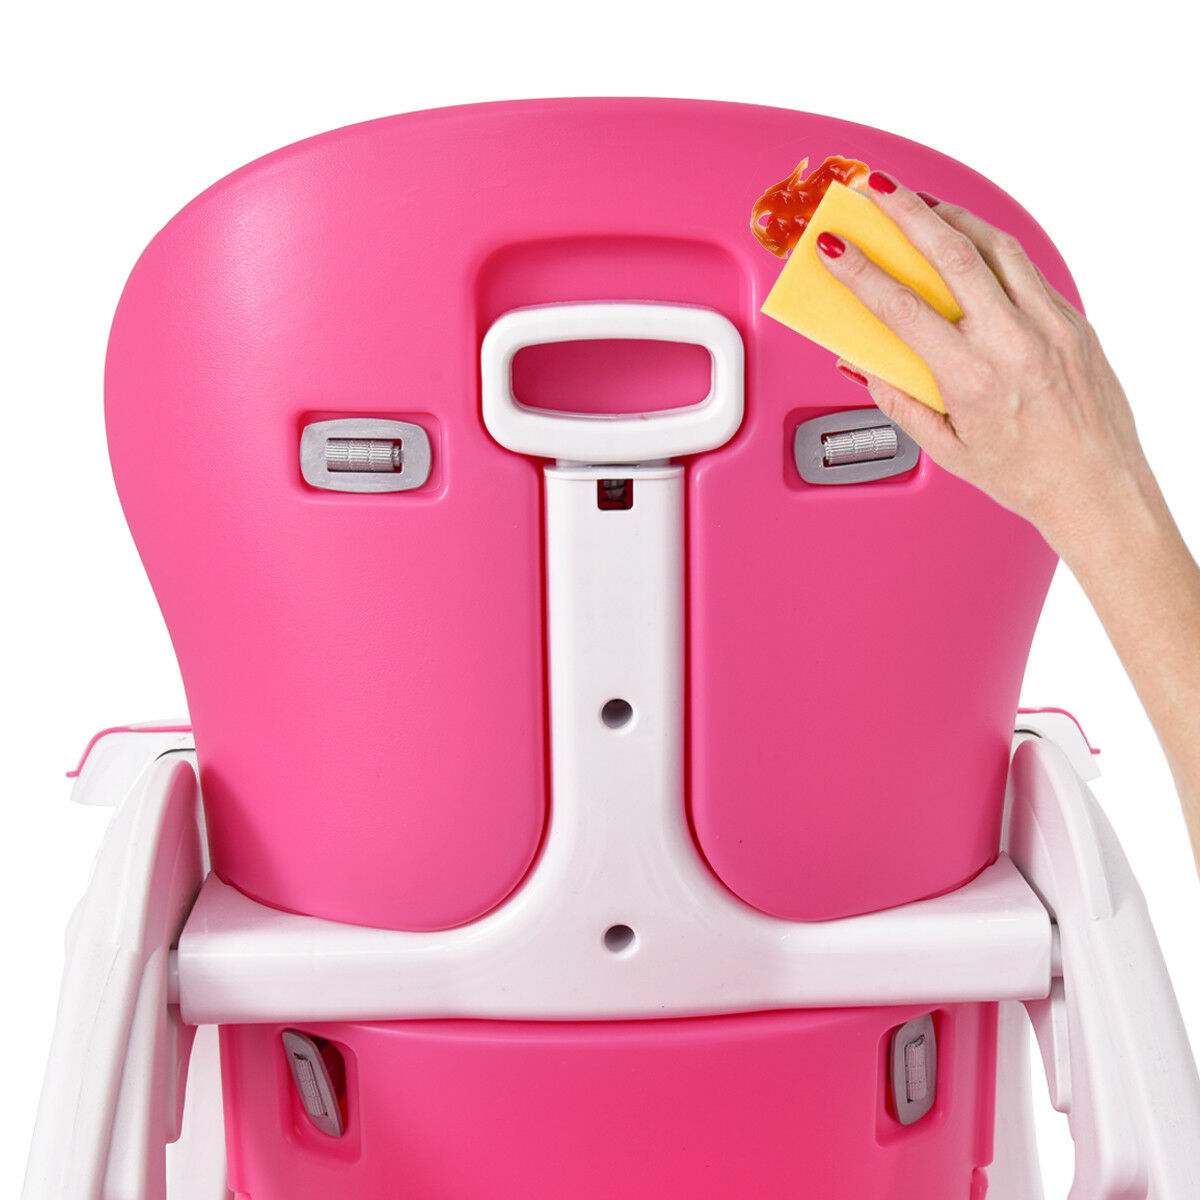 3 in 1 Baby High Chair Convertible Play Table Seat Booster Toddler Feeding Tray - image 6 de 10